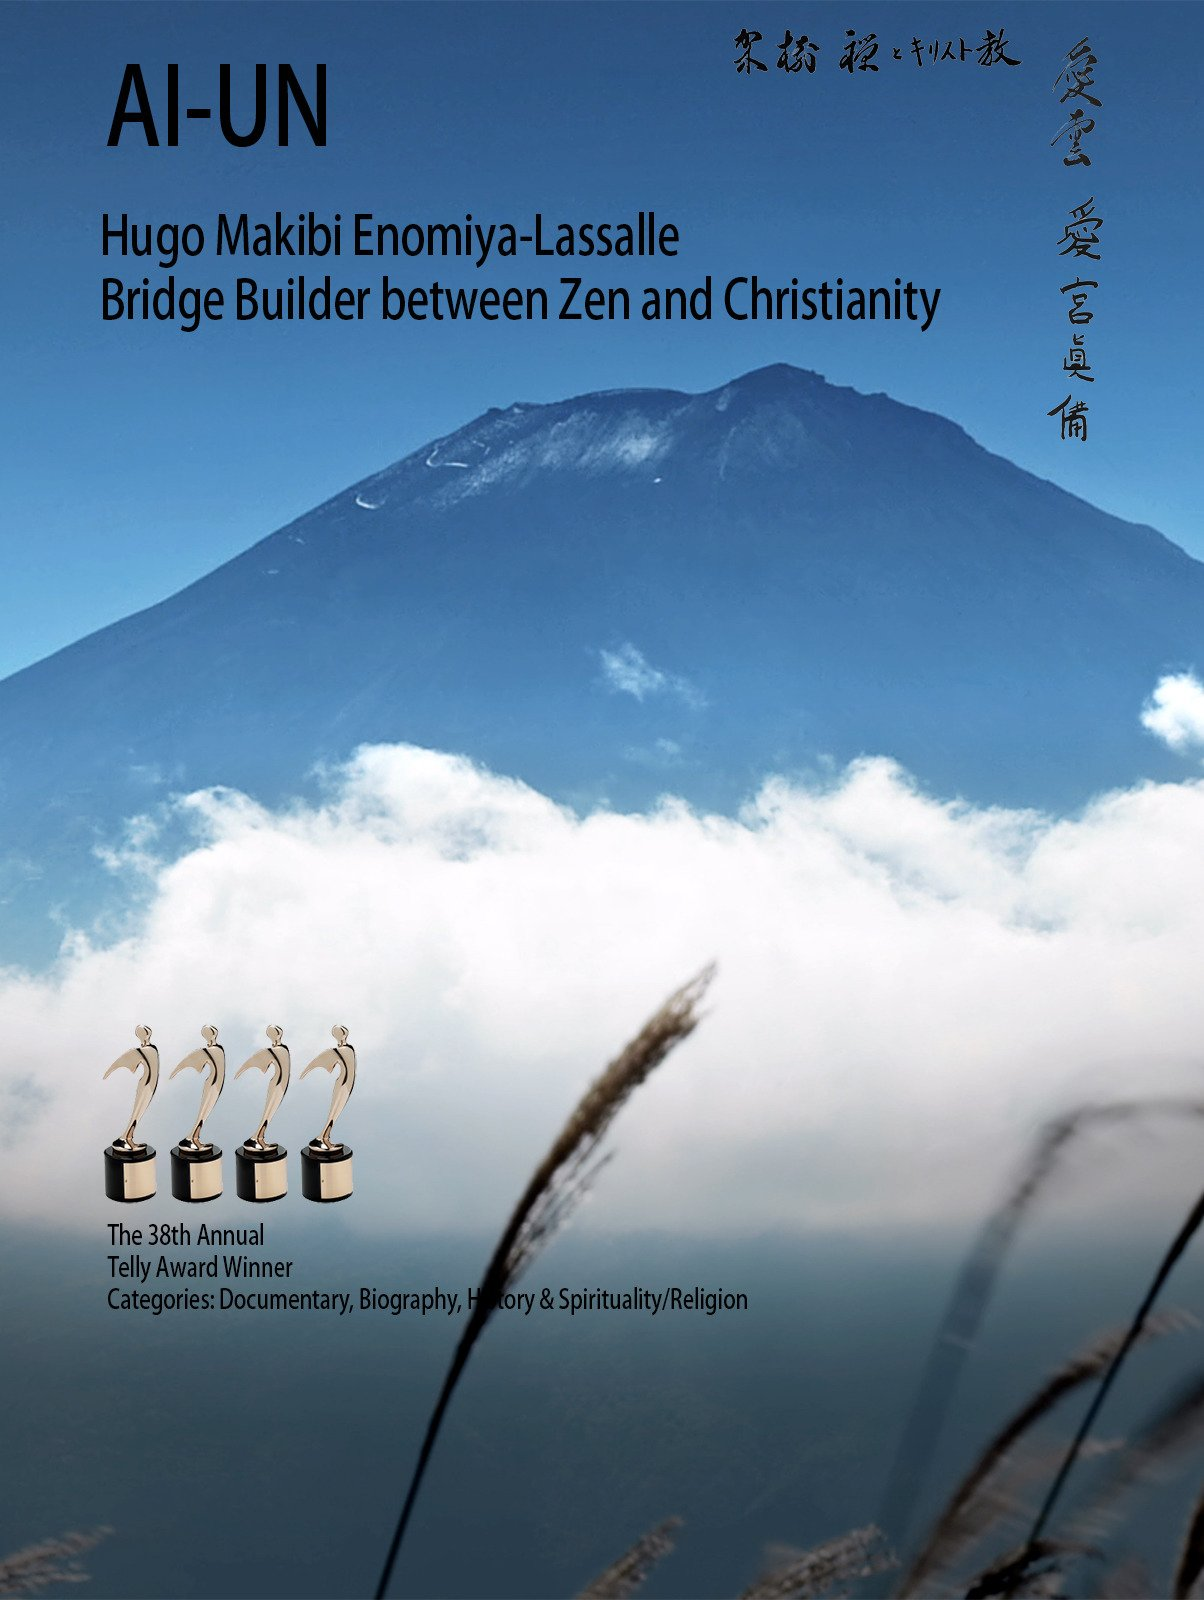 Ai-un: Hugo Makibi Enomiya-Lassalle. Bridge Builder between Zen and Christianity